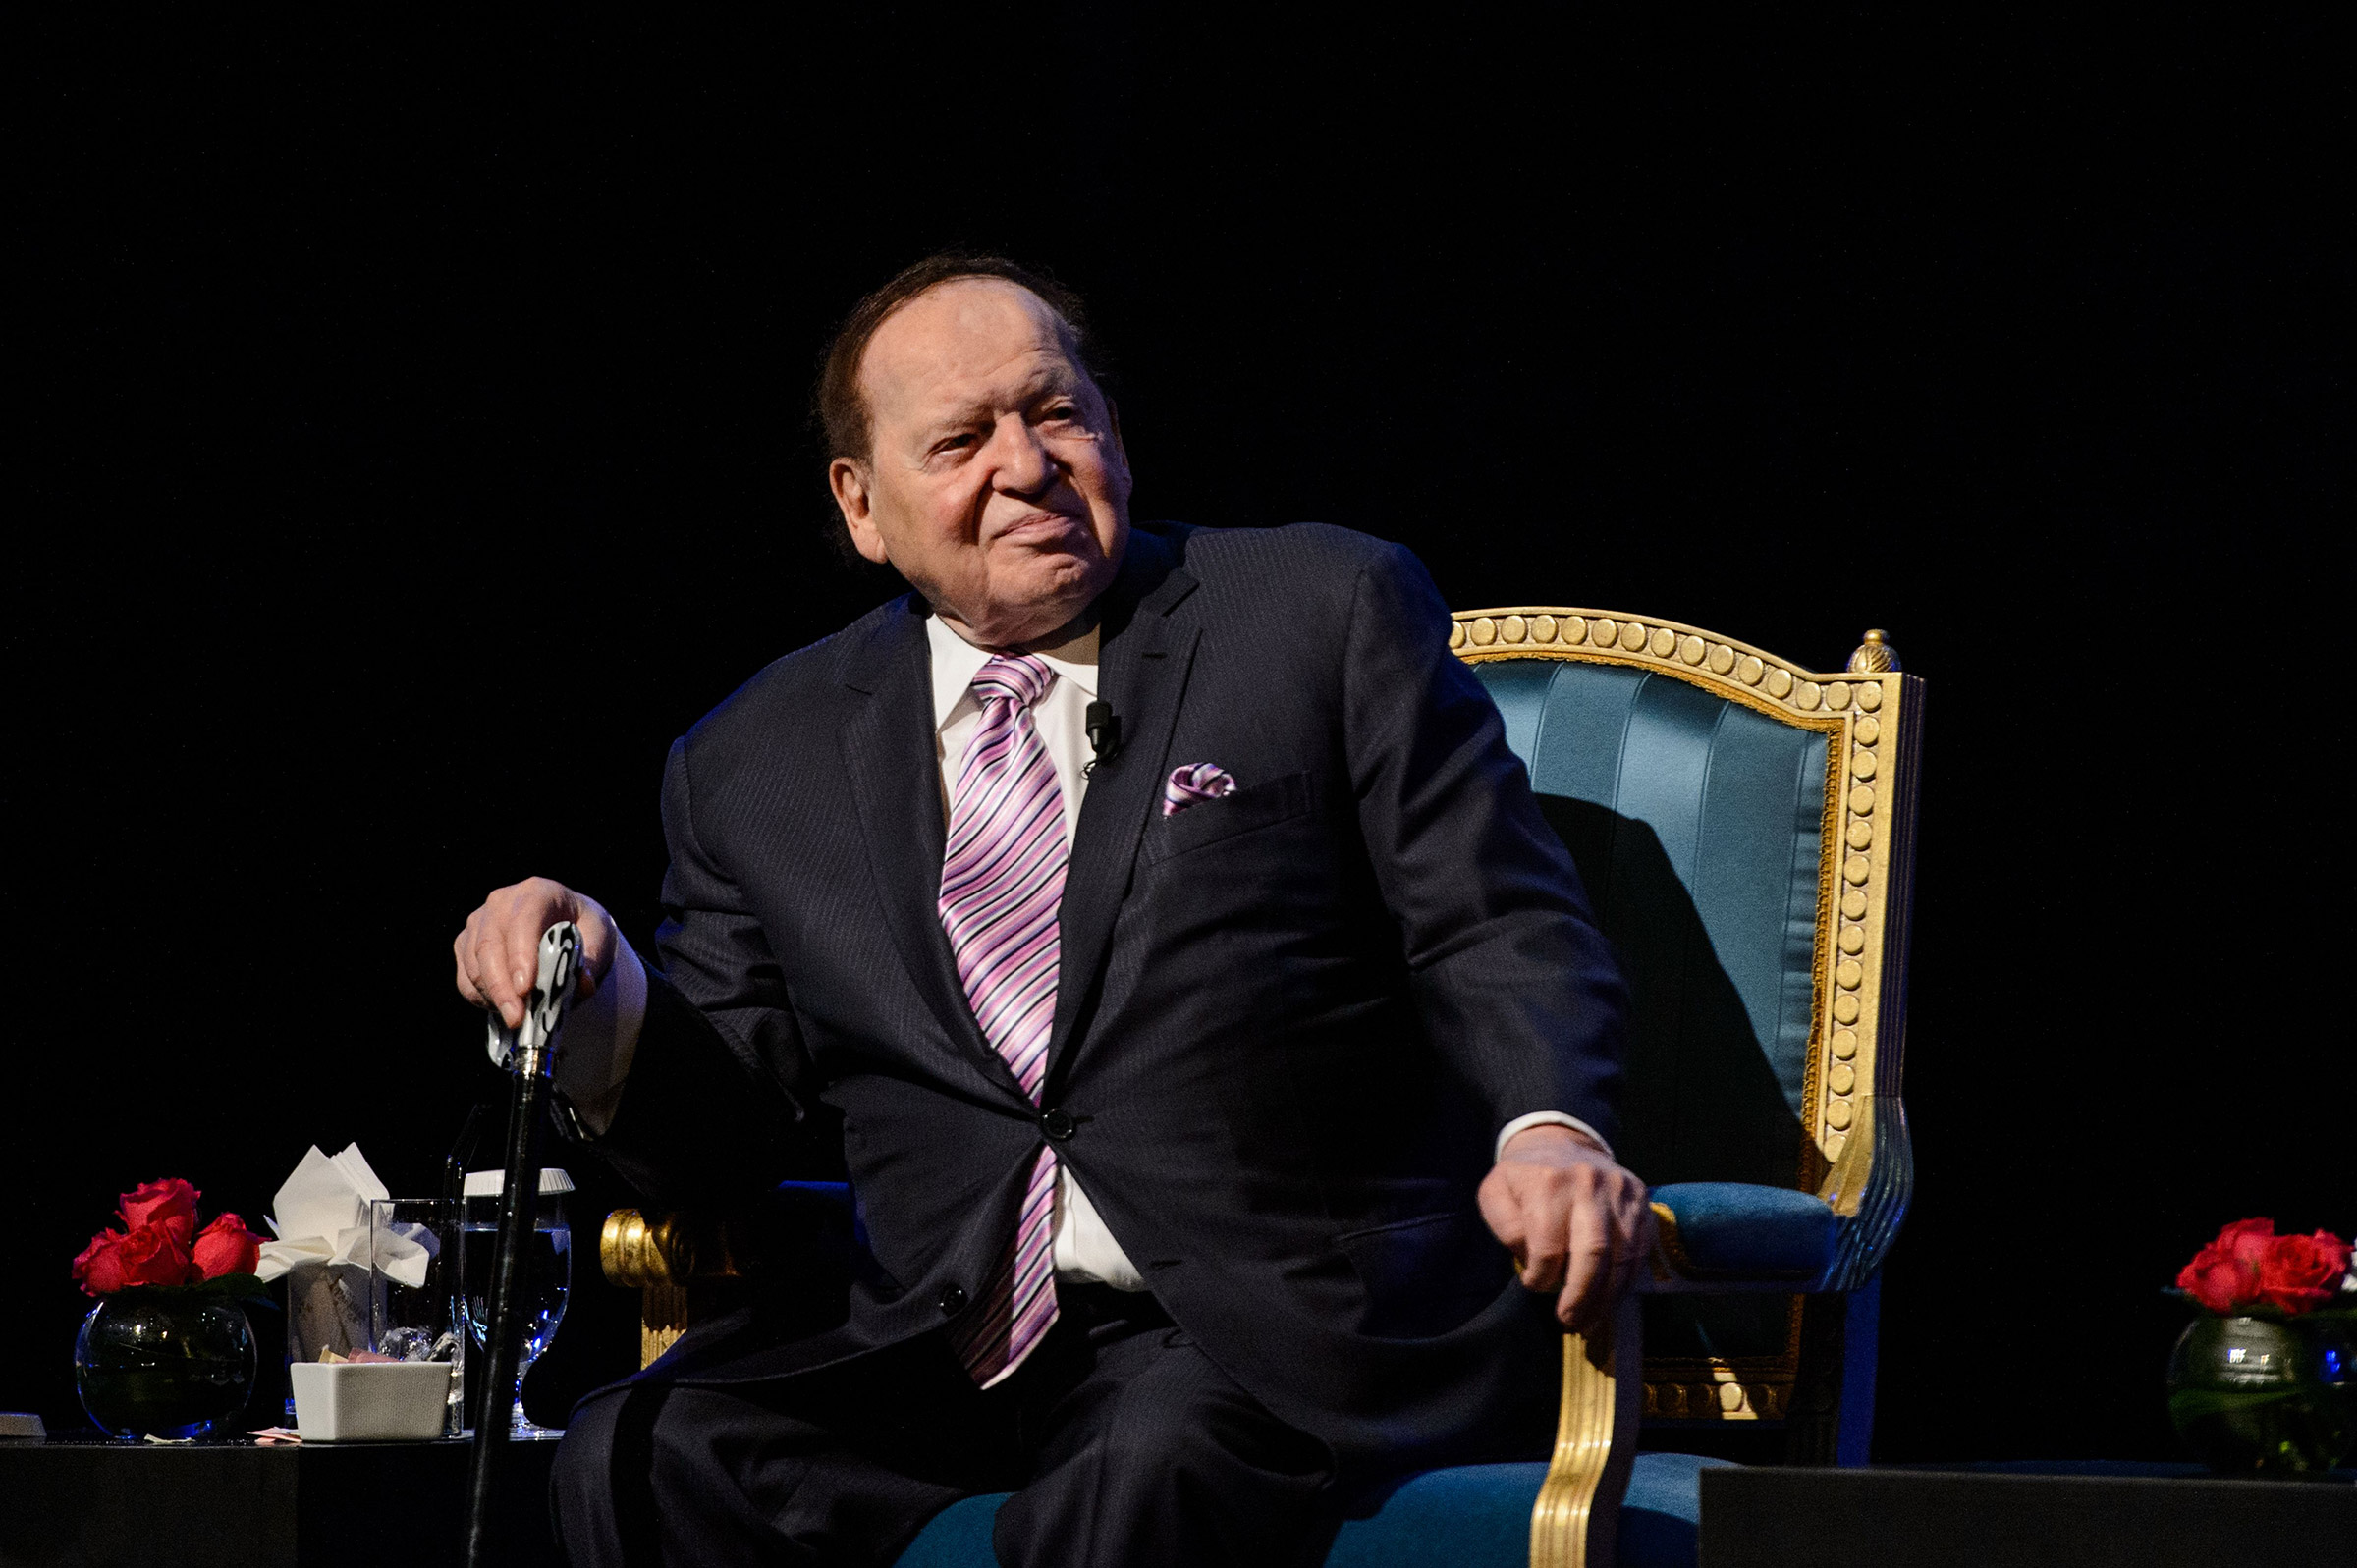 Chairman and chief executive officer of the Las Vegas Sands Corporation Sheldon Adelson attends a press conference in Macau, on Sept. 13, 2016.